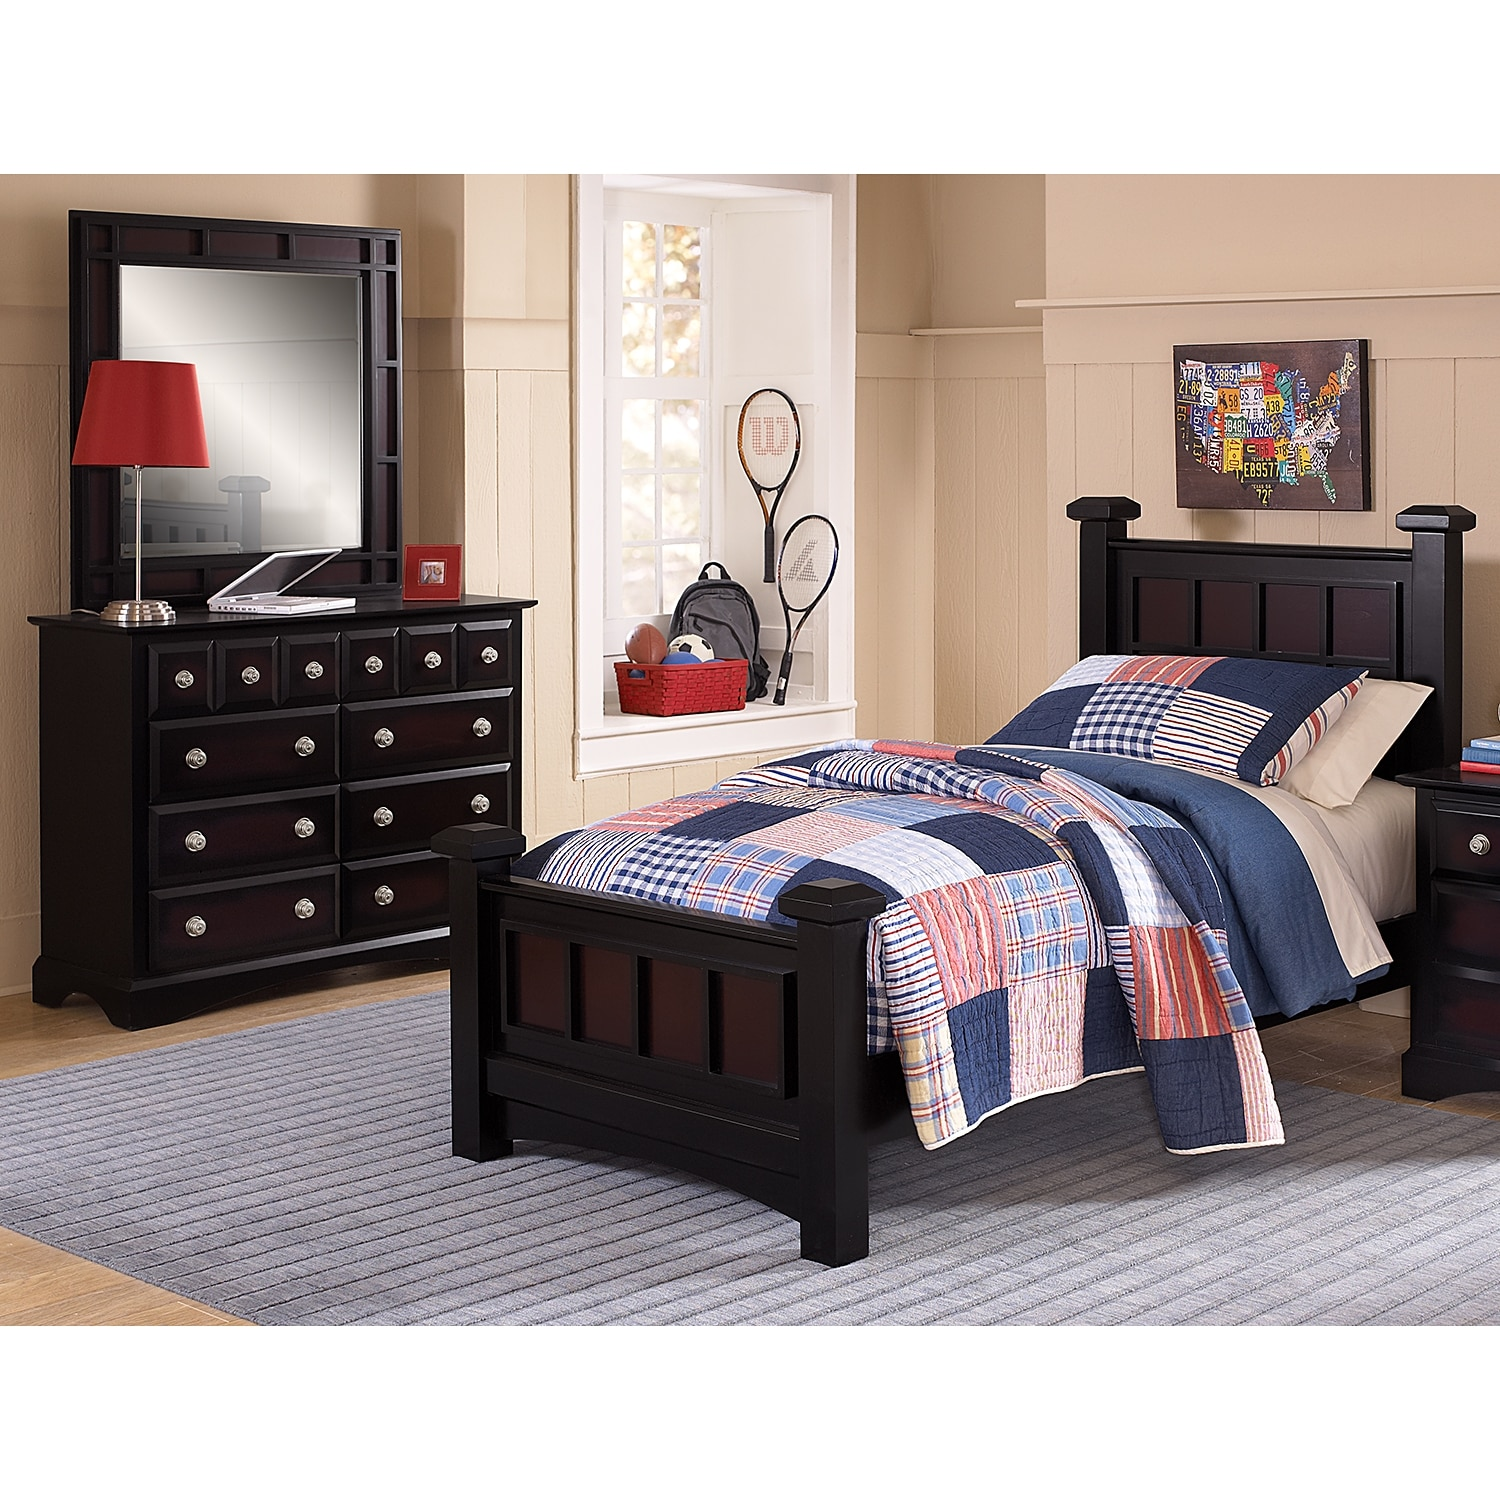 Winchester 5 Piece Full Bedroom Set Black And Burnished Merlot Value City Furniture